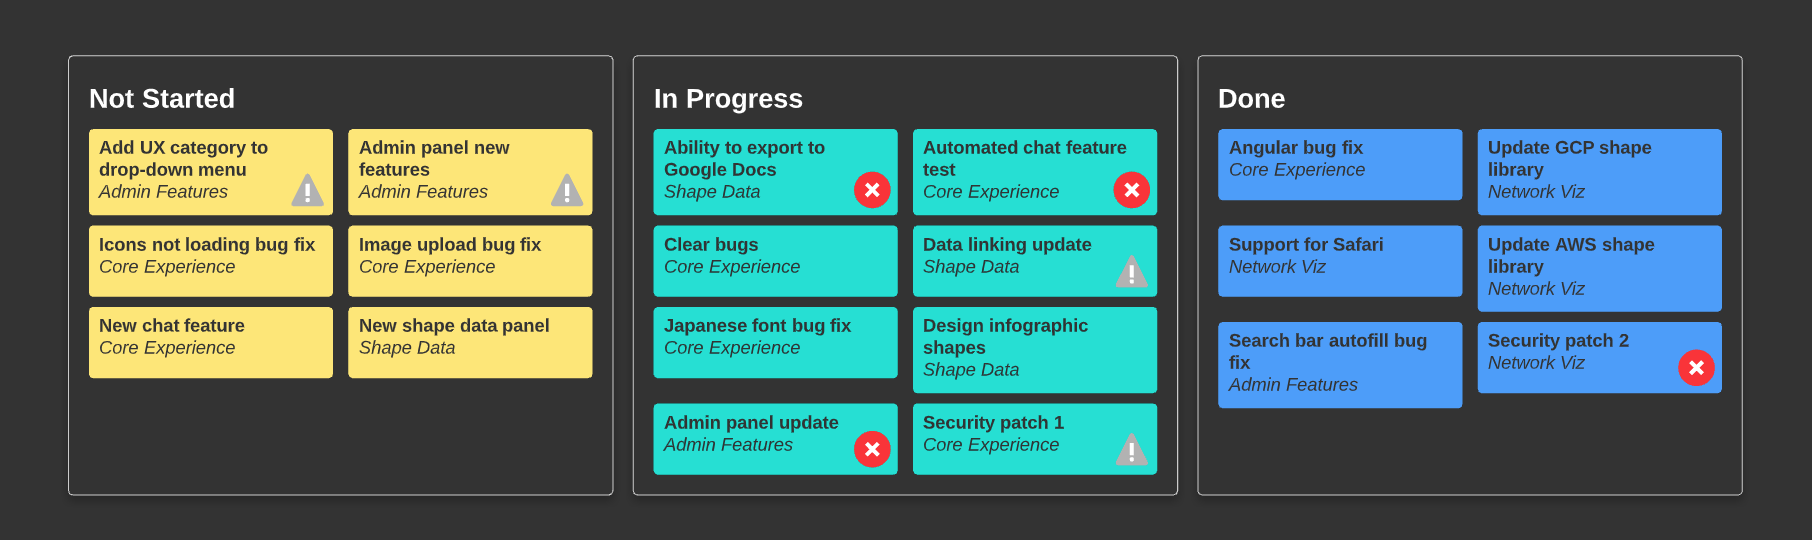 kanban board with Smart Containers